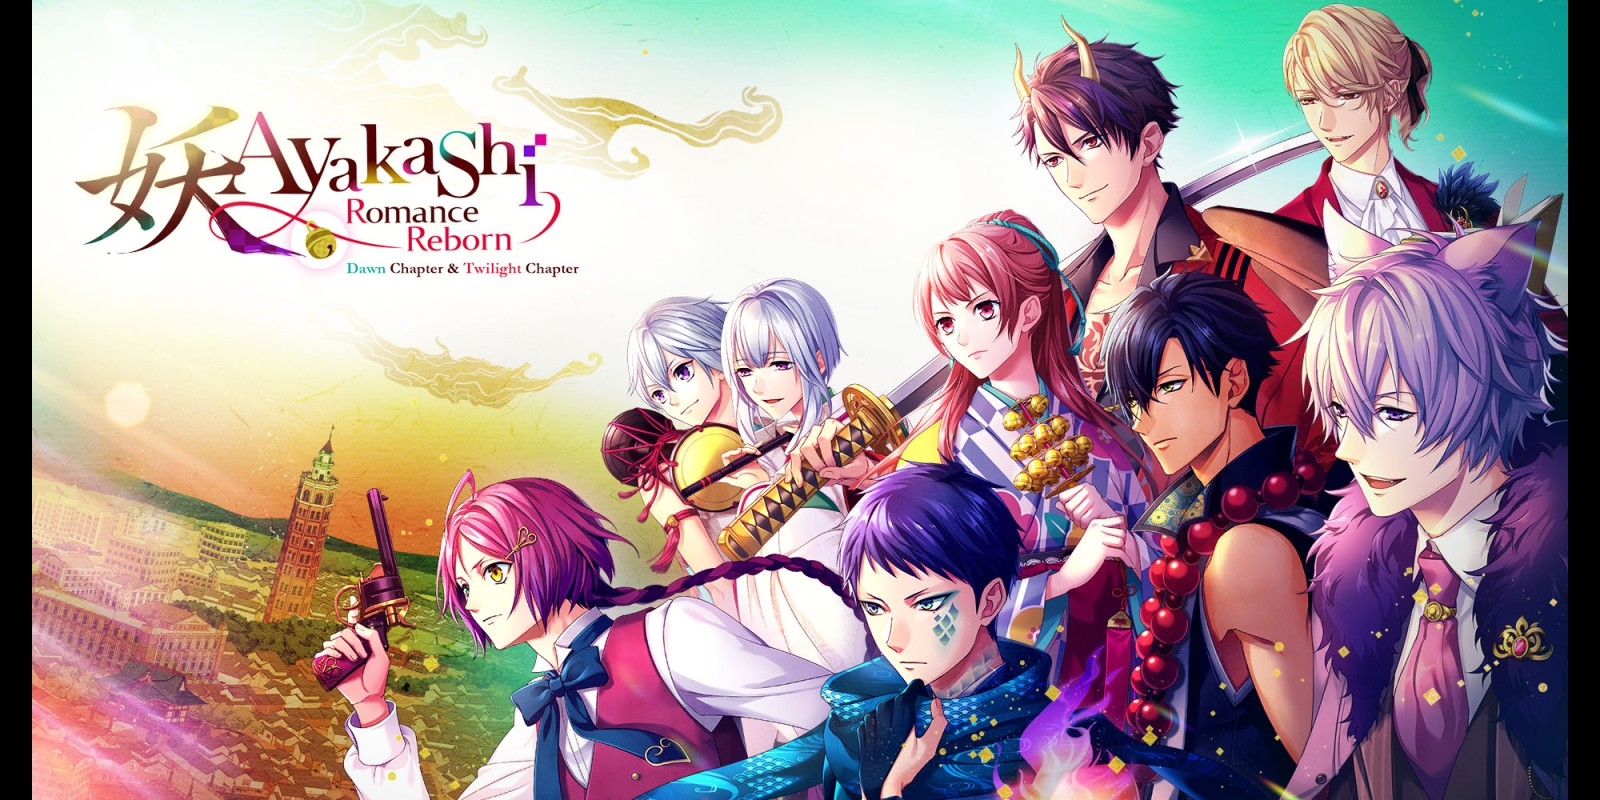 Ayakashi: Romance Reborn Dawn Chapter & Twilight Chapter